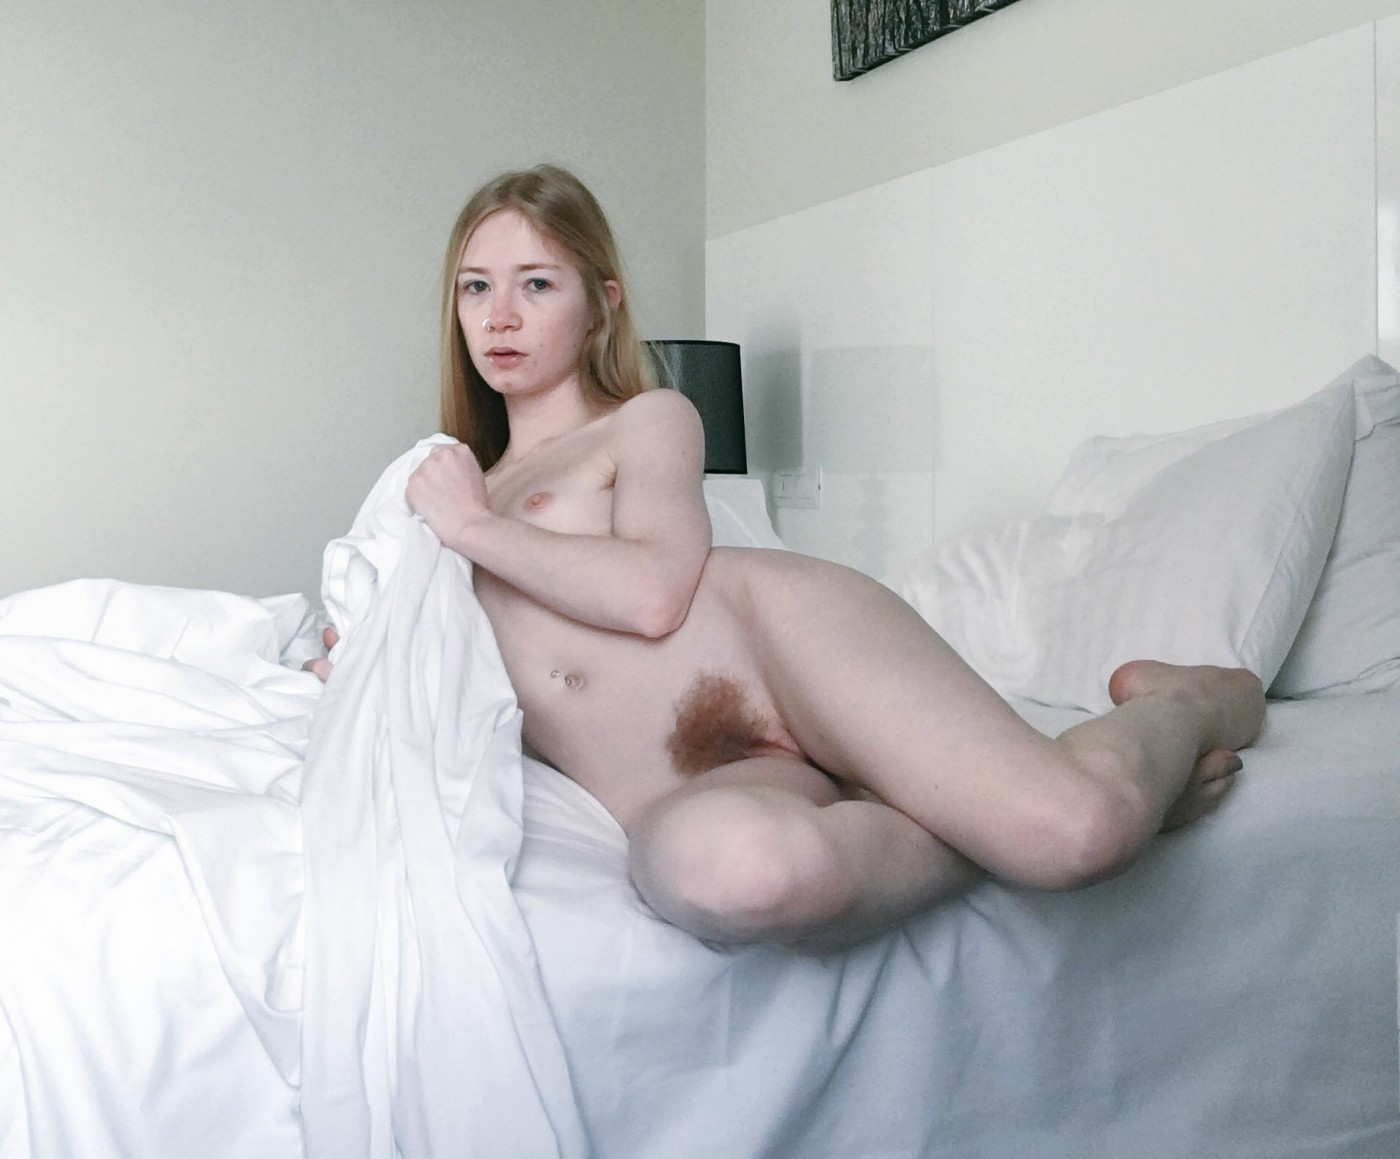 Petite Nymphet – onlyfans.com – Siterip – Ubiqfile